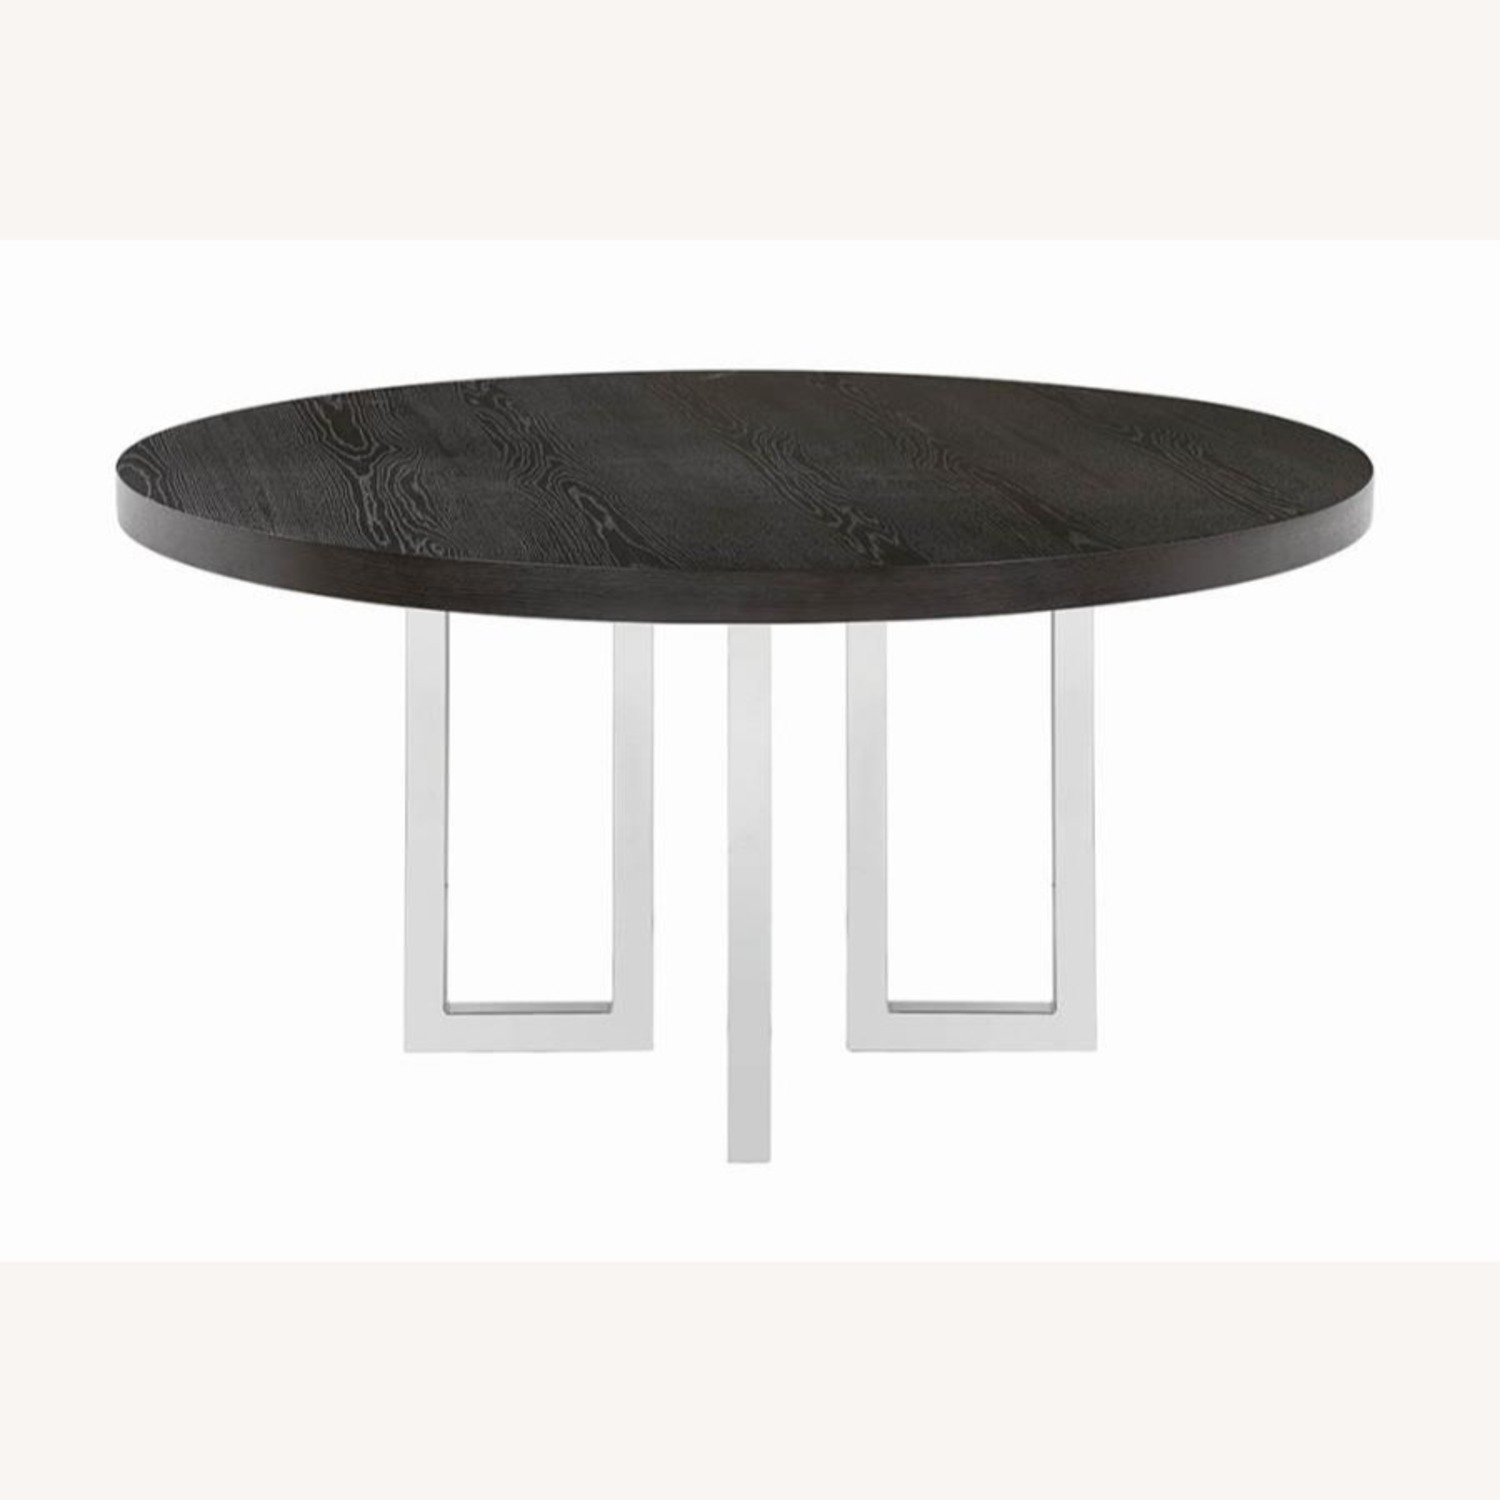 Modern Round Dining Table In Graphite Wood Finish - image-0